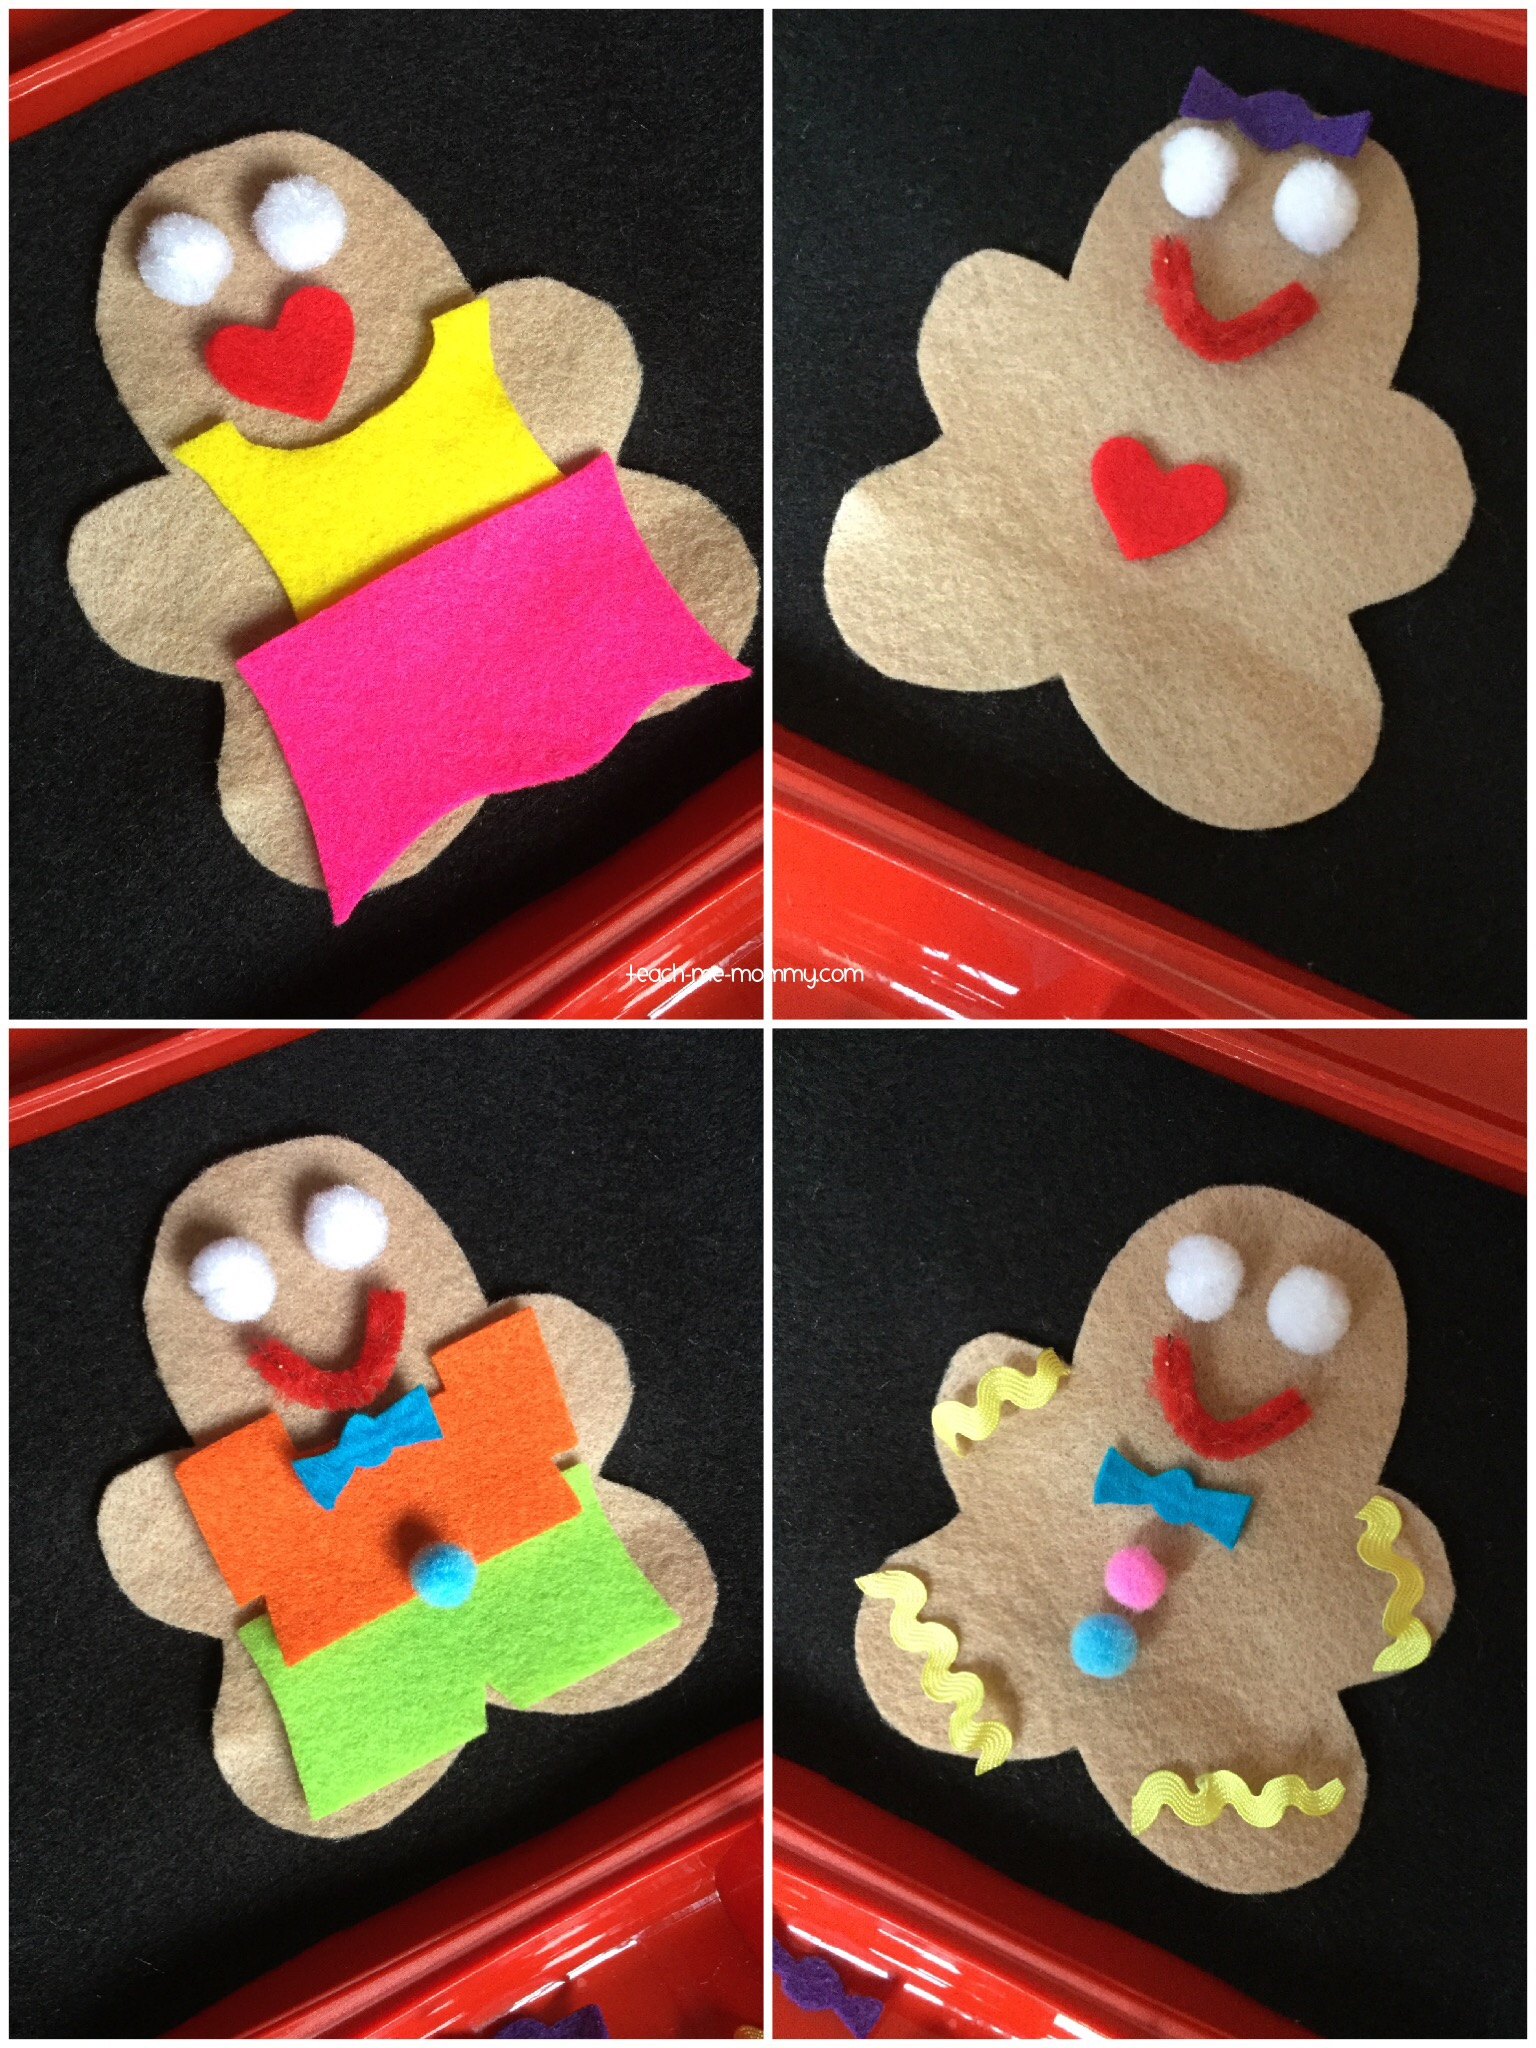 dress a gingerbread man